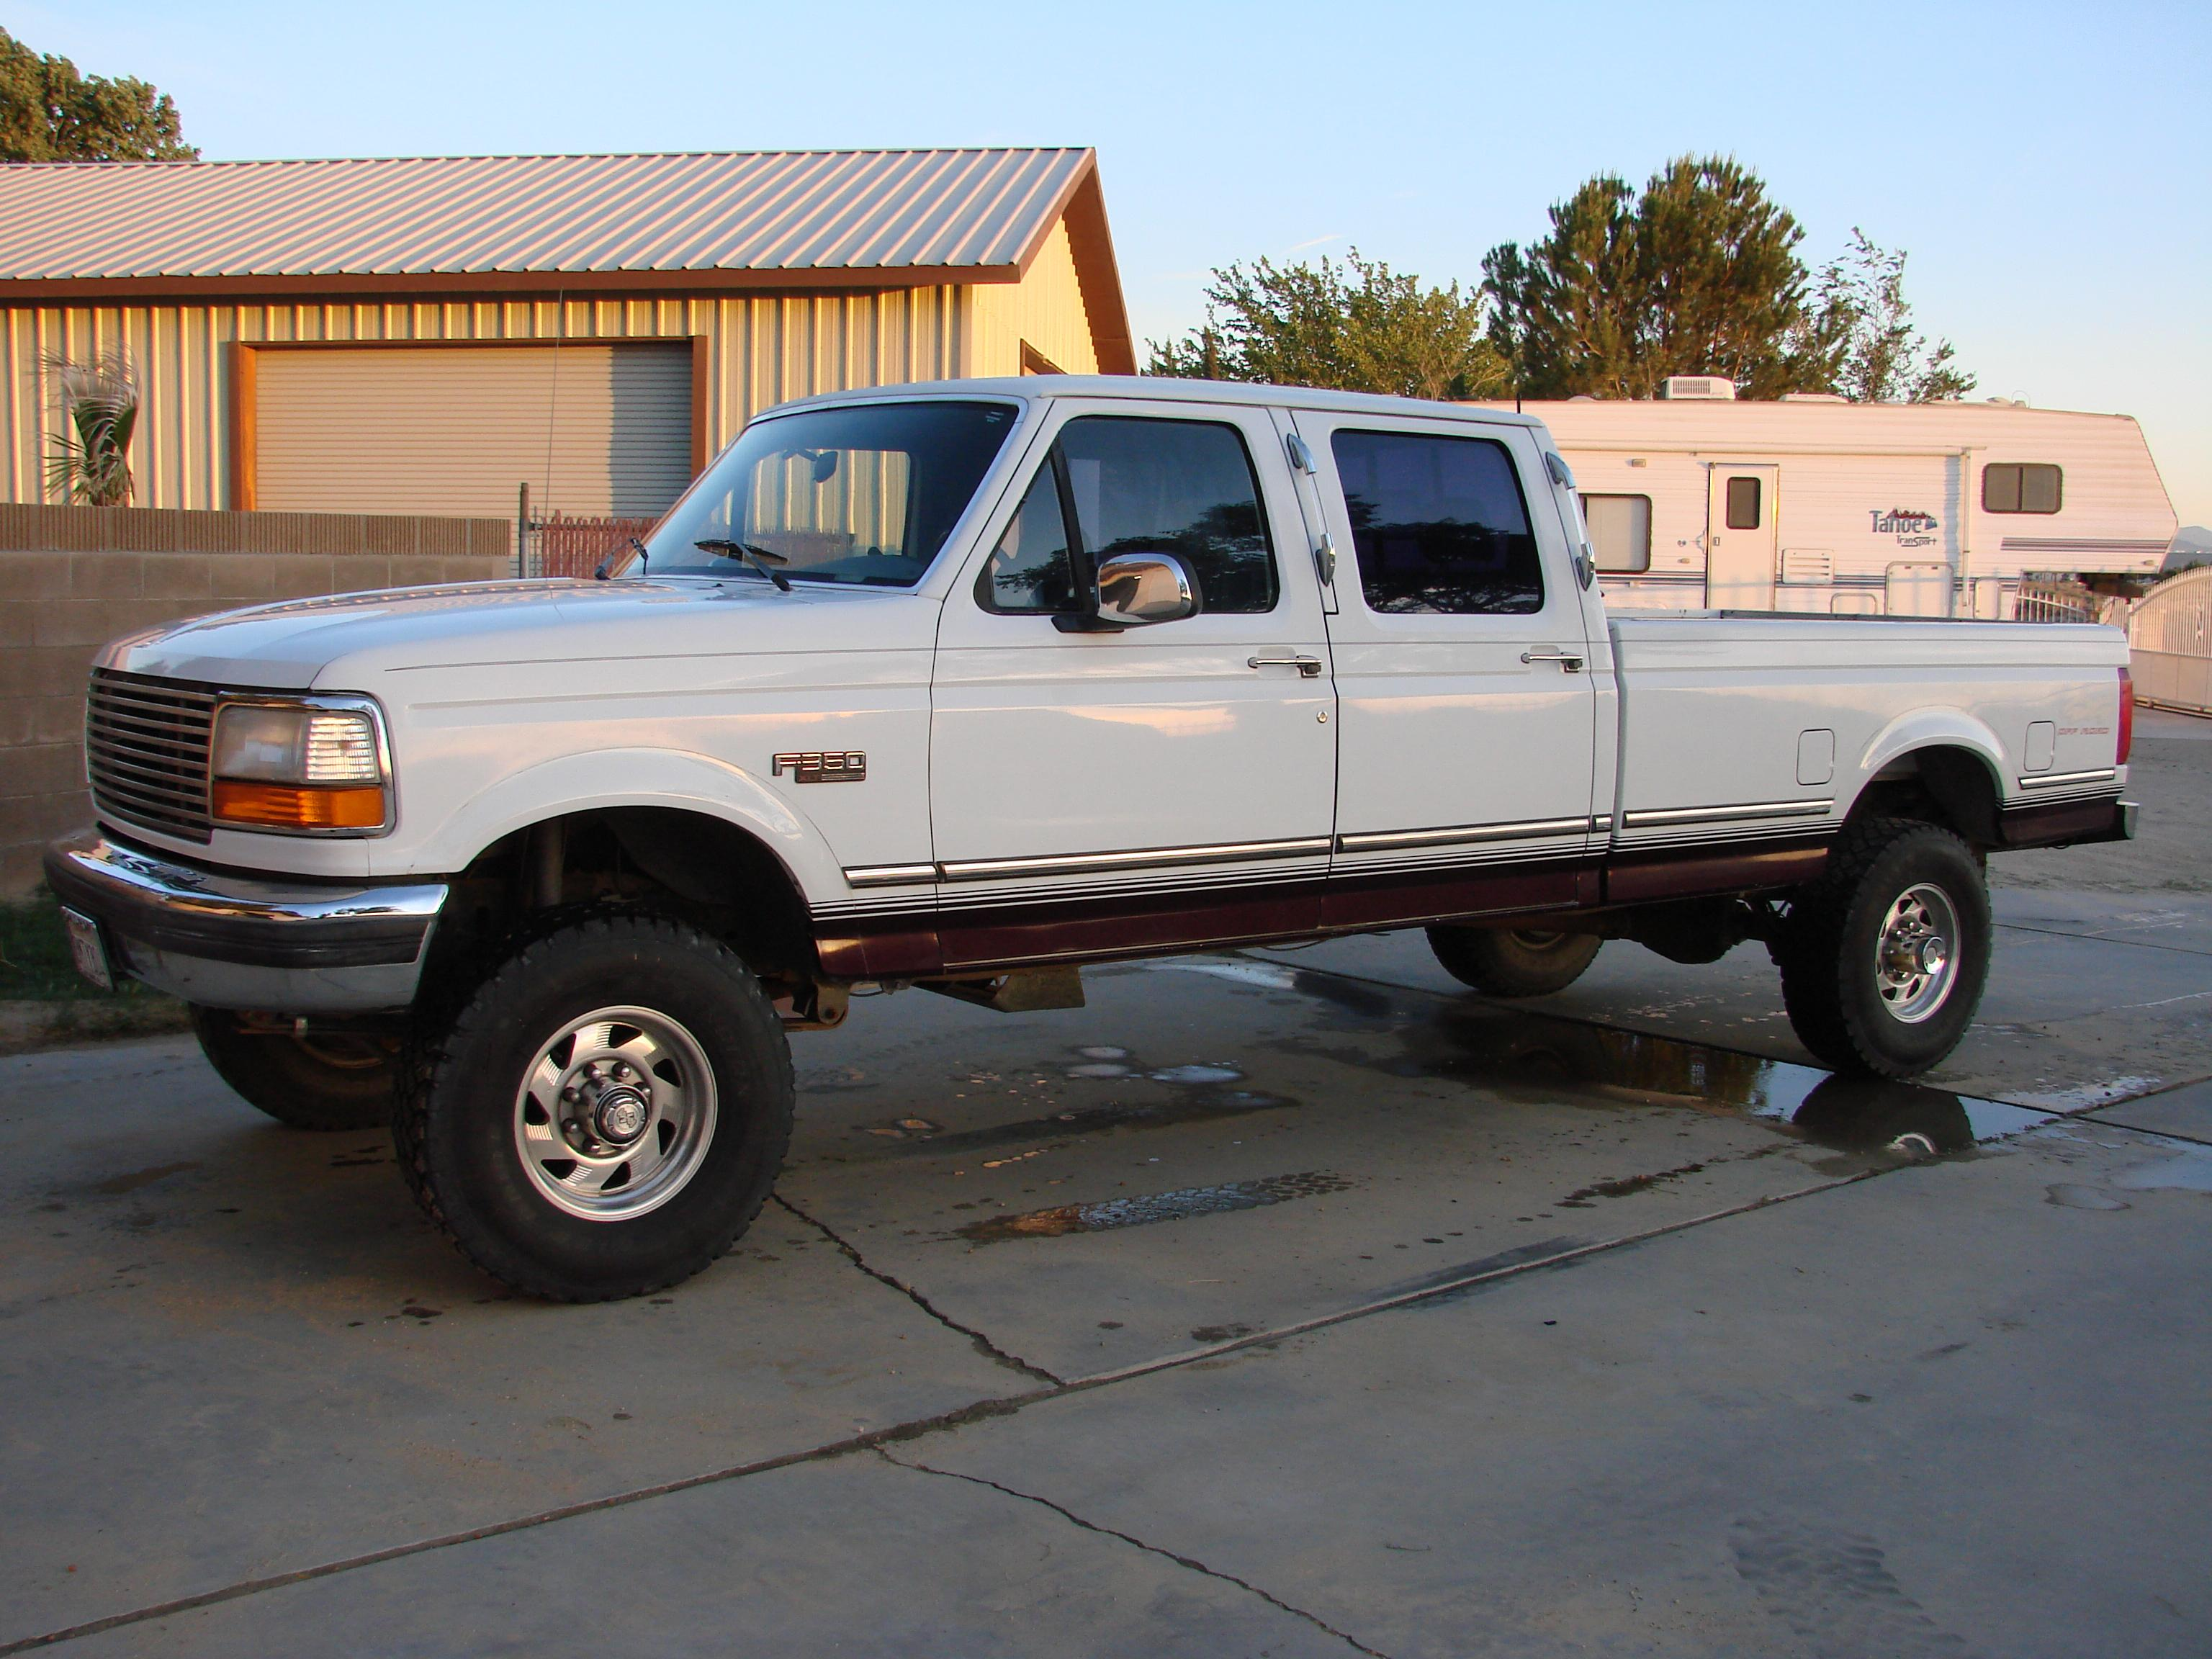 1994 ford f 350 size 634 kb resolution 3072x2304 type link file src